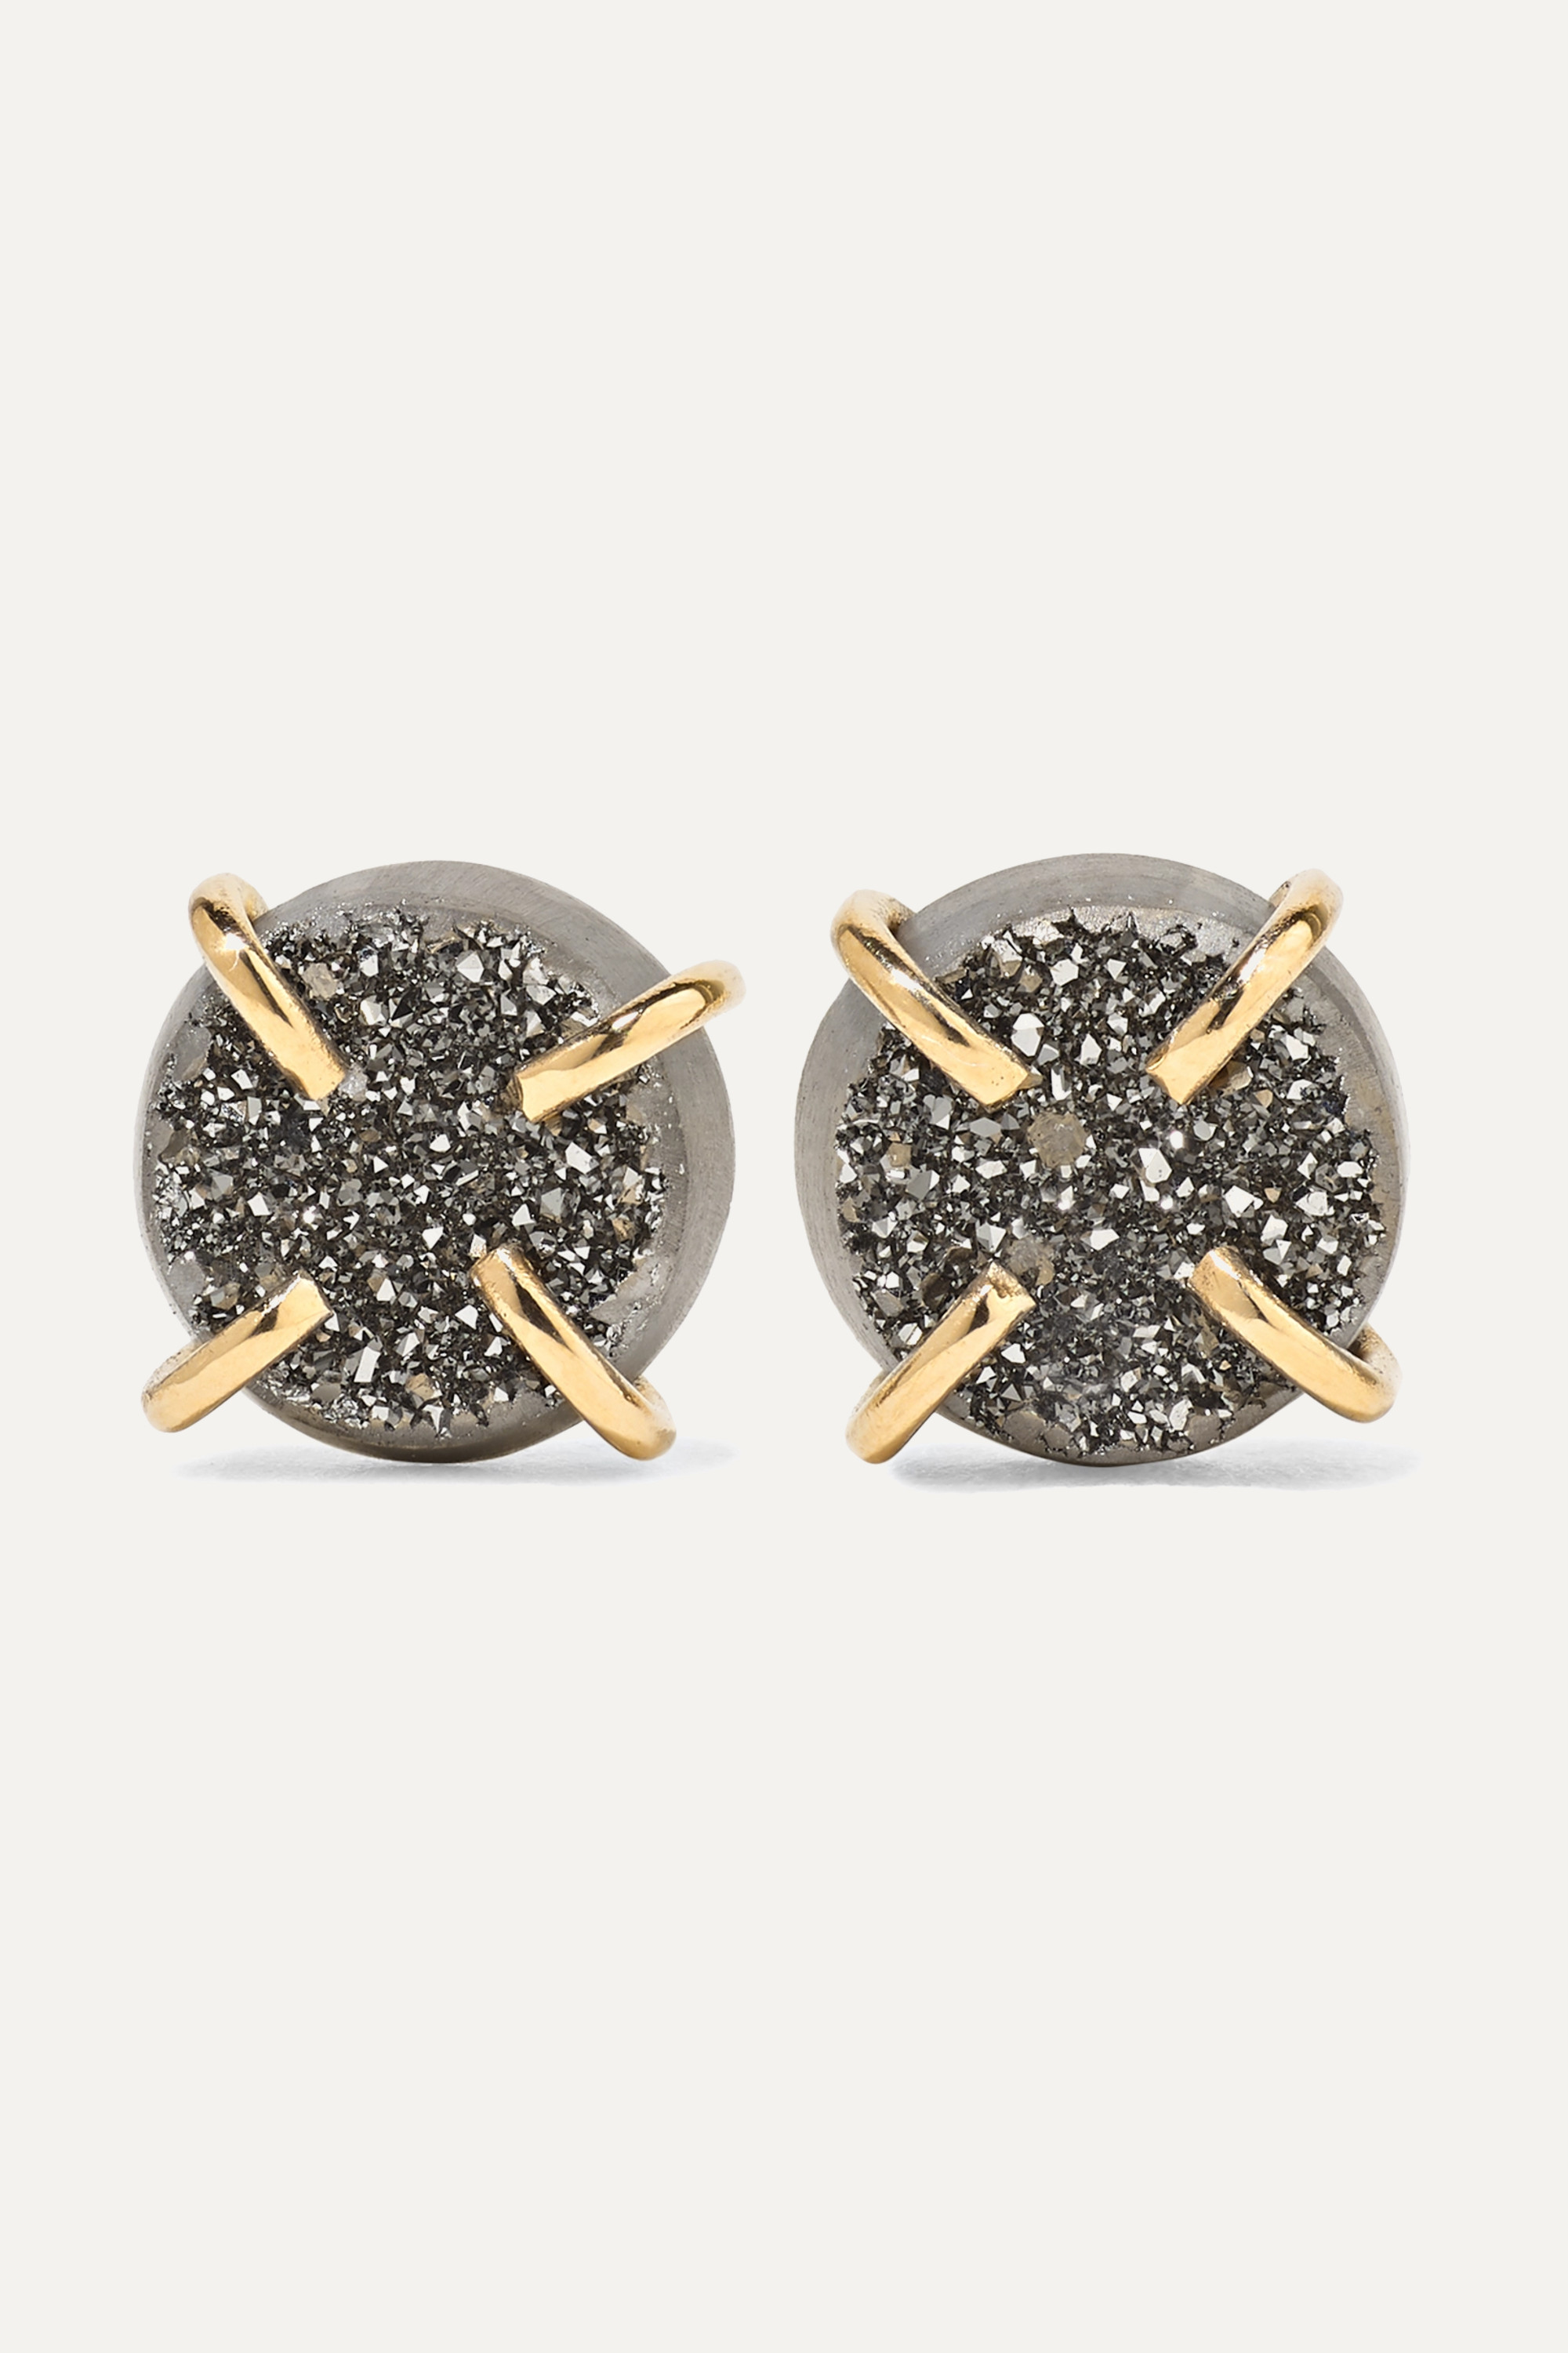 MELISSA JOY MANNING 14-karat gold druzy earrings